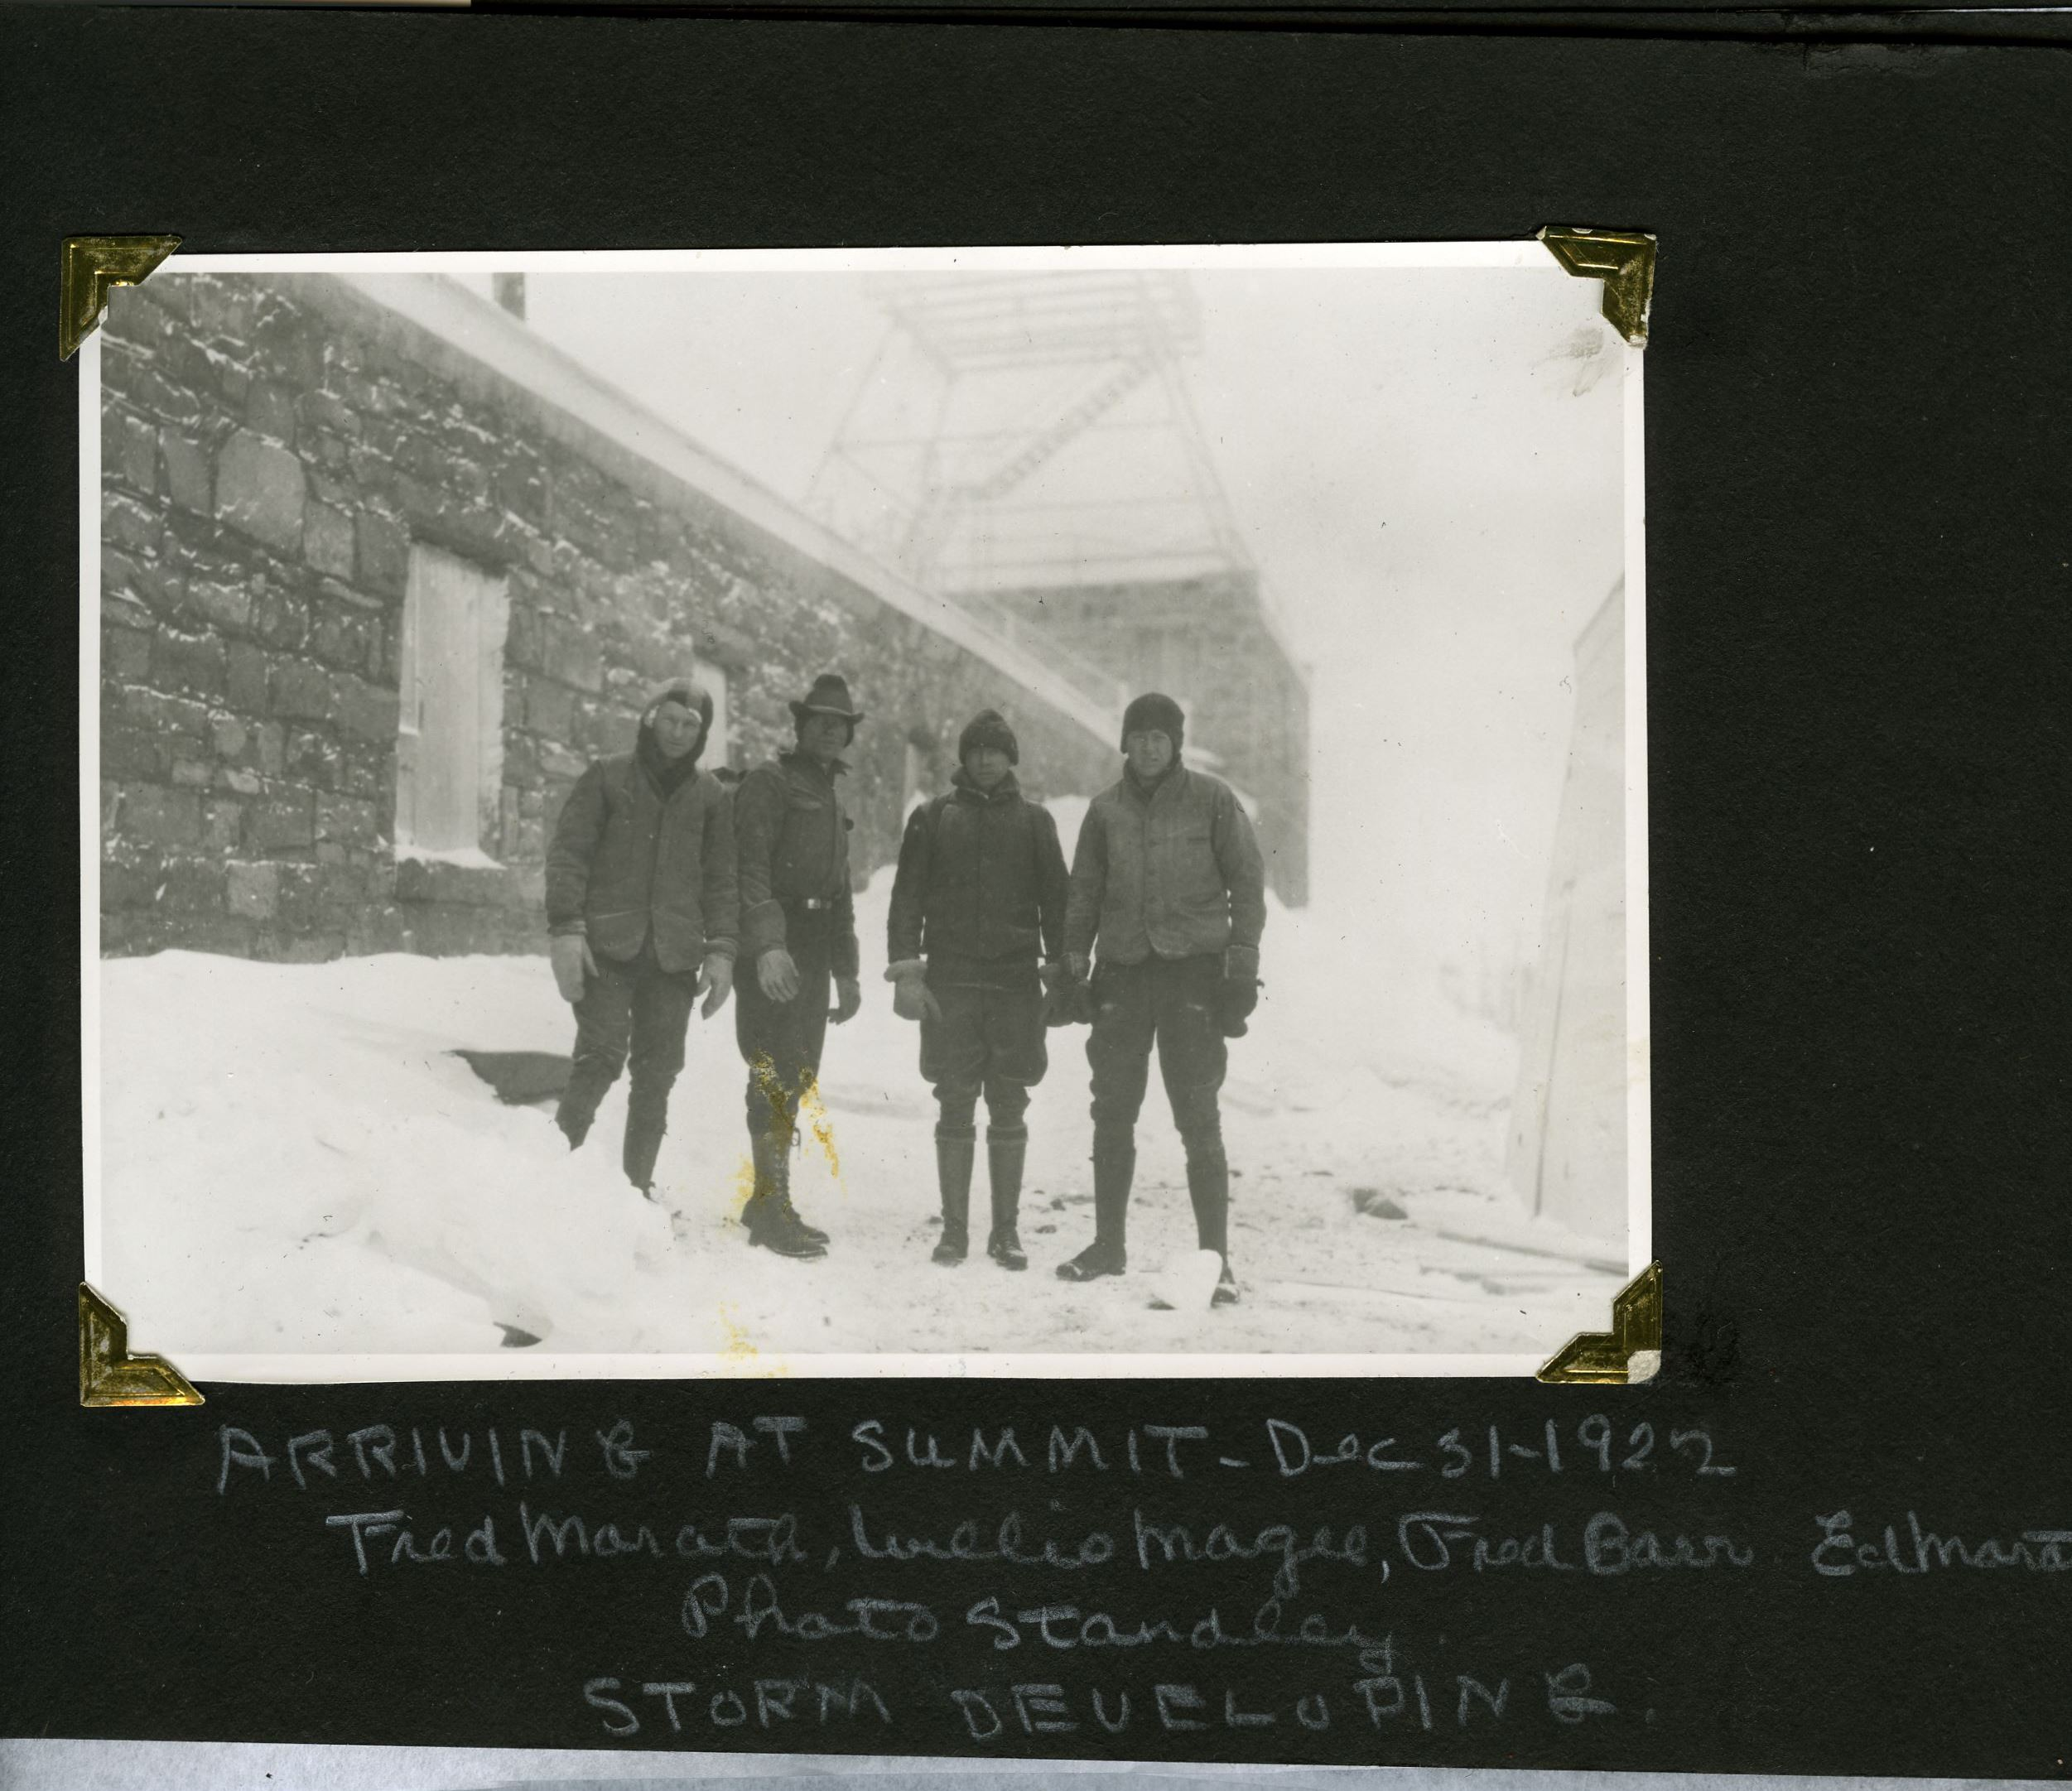 Taken December 31, 1922 four members of the Frozen Five stand near the shelter on the top of Pikes Peak. According to the AdAmAn website, at the stroke of midnight, they lit the flares and the other fireworks they had hauled up the mountain...